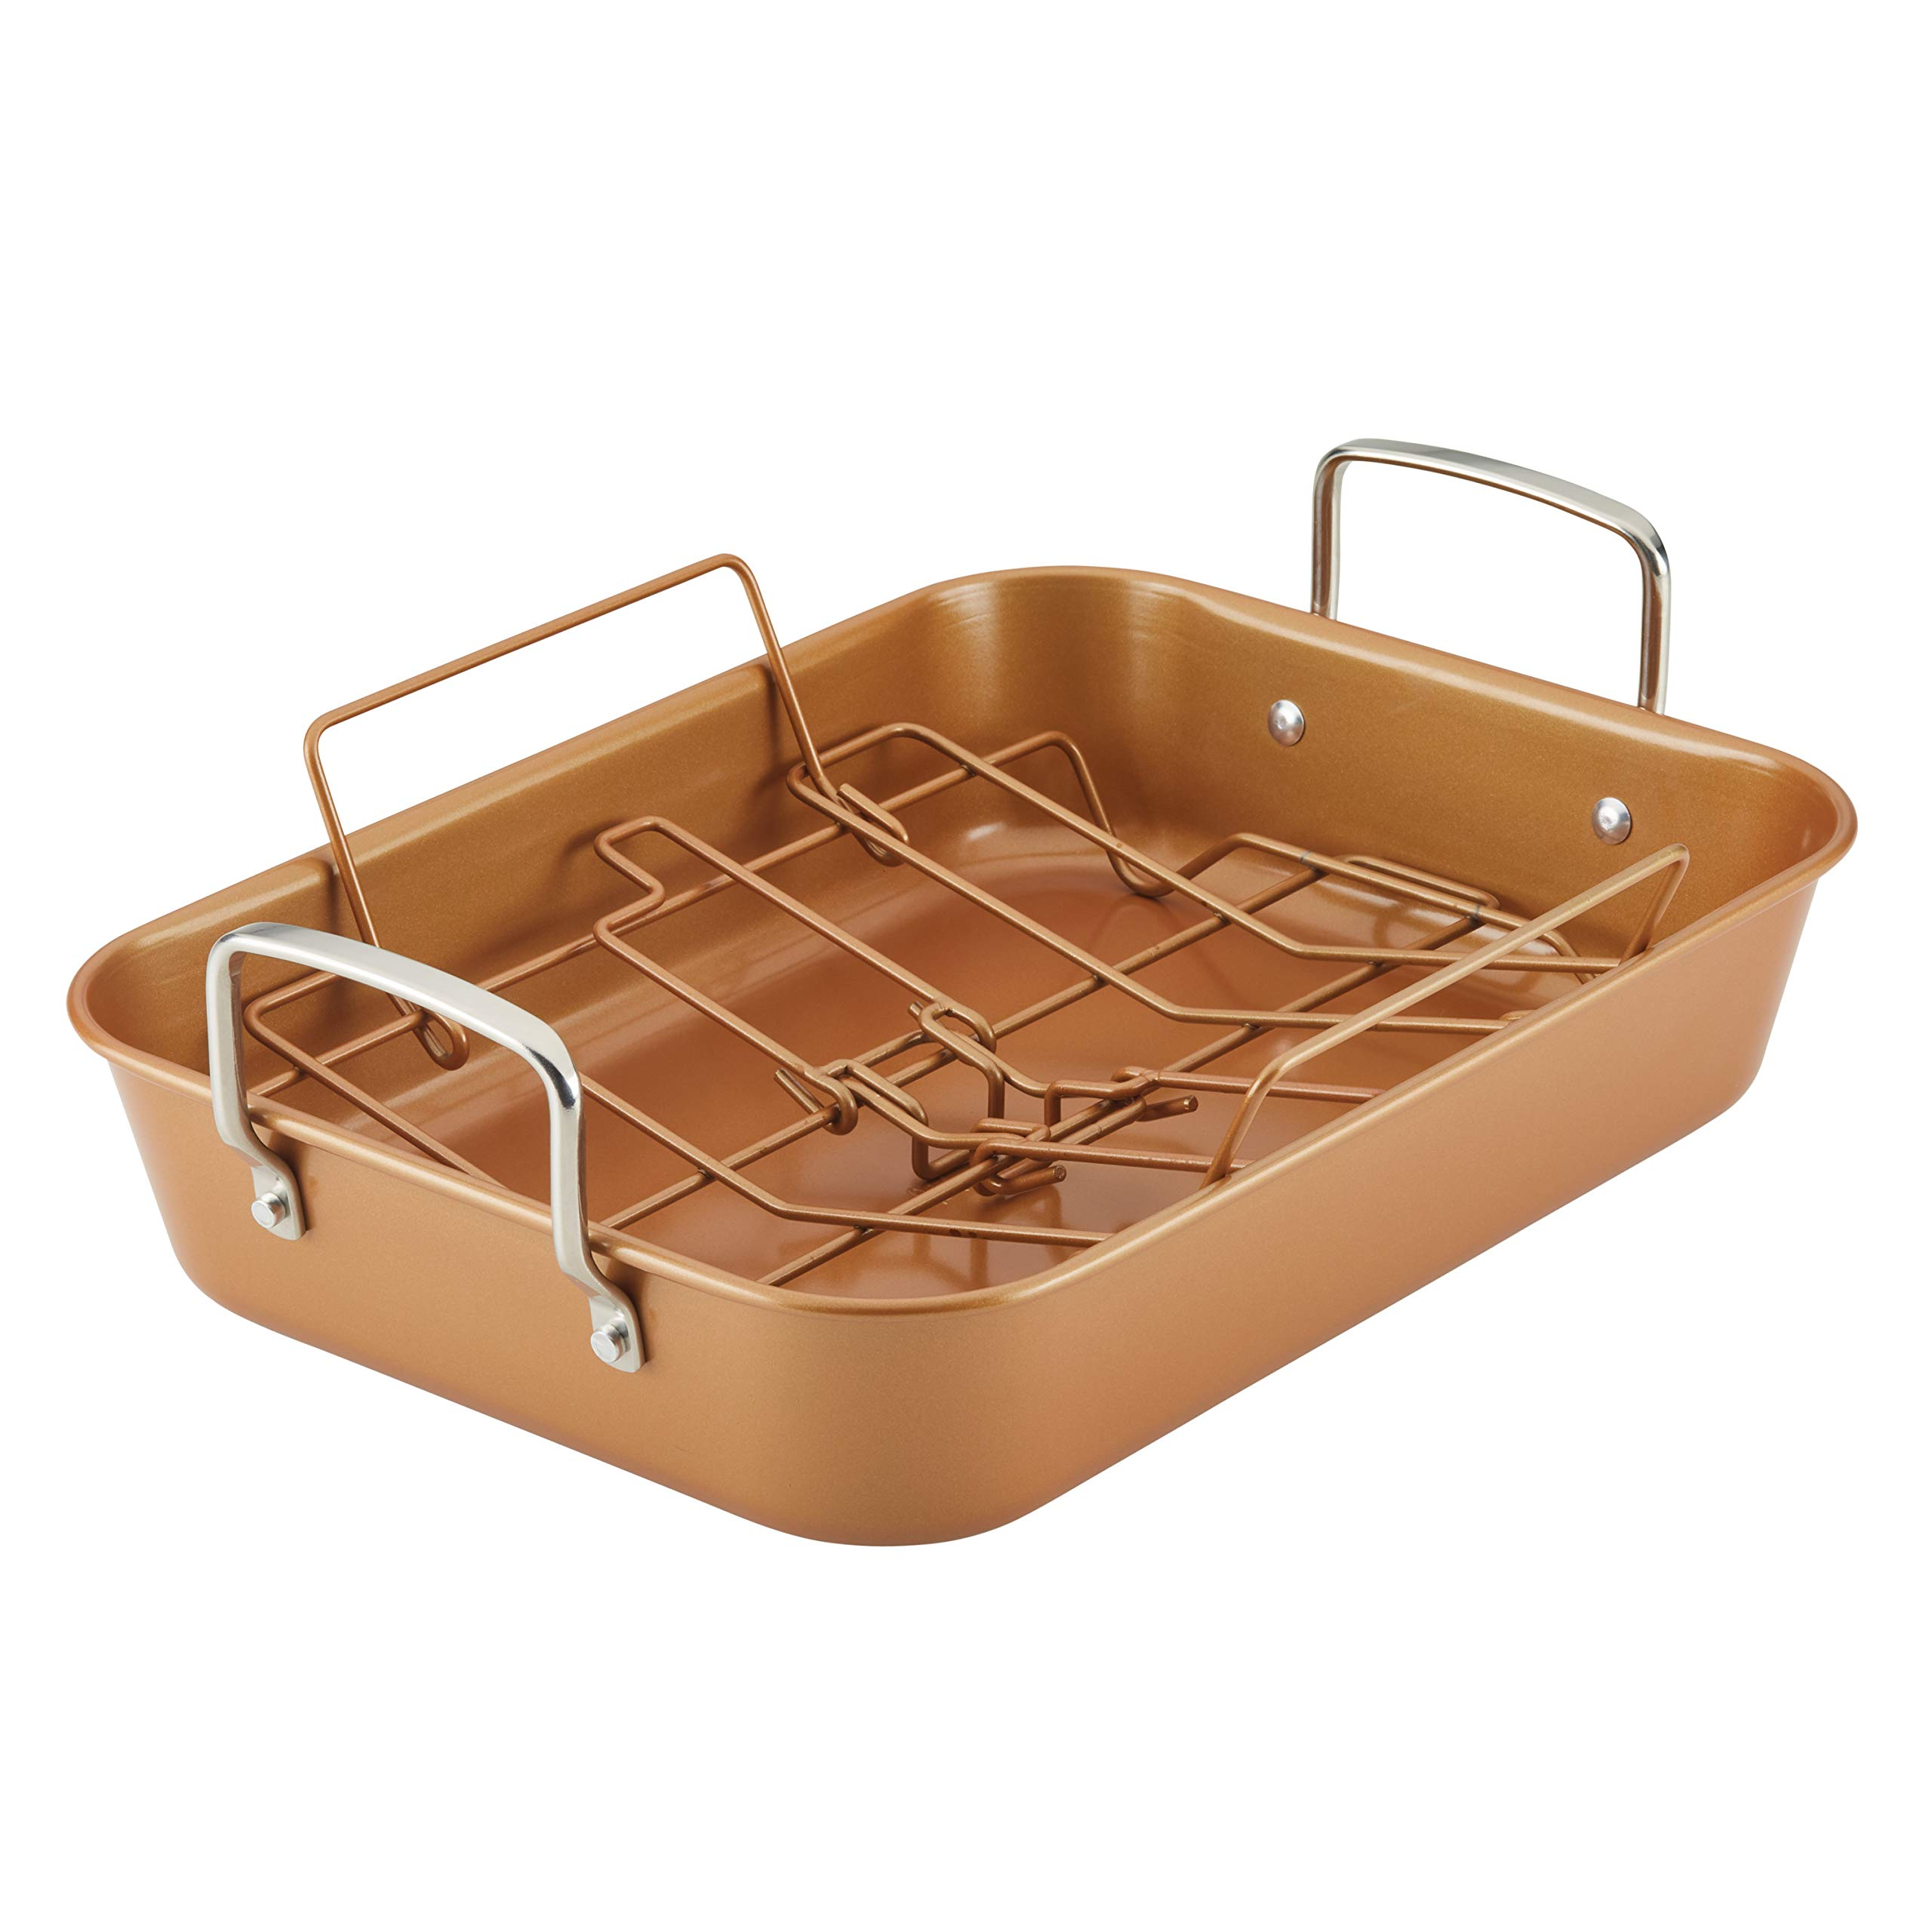 Ayesha Curry 47792 11'' x 15'' Rack Steel Roaster, 11 Inch x 15 Inch, Copper by Ayesha Curry Kitchenware